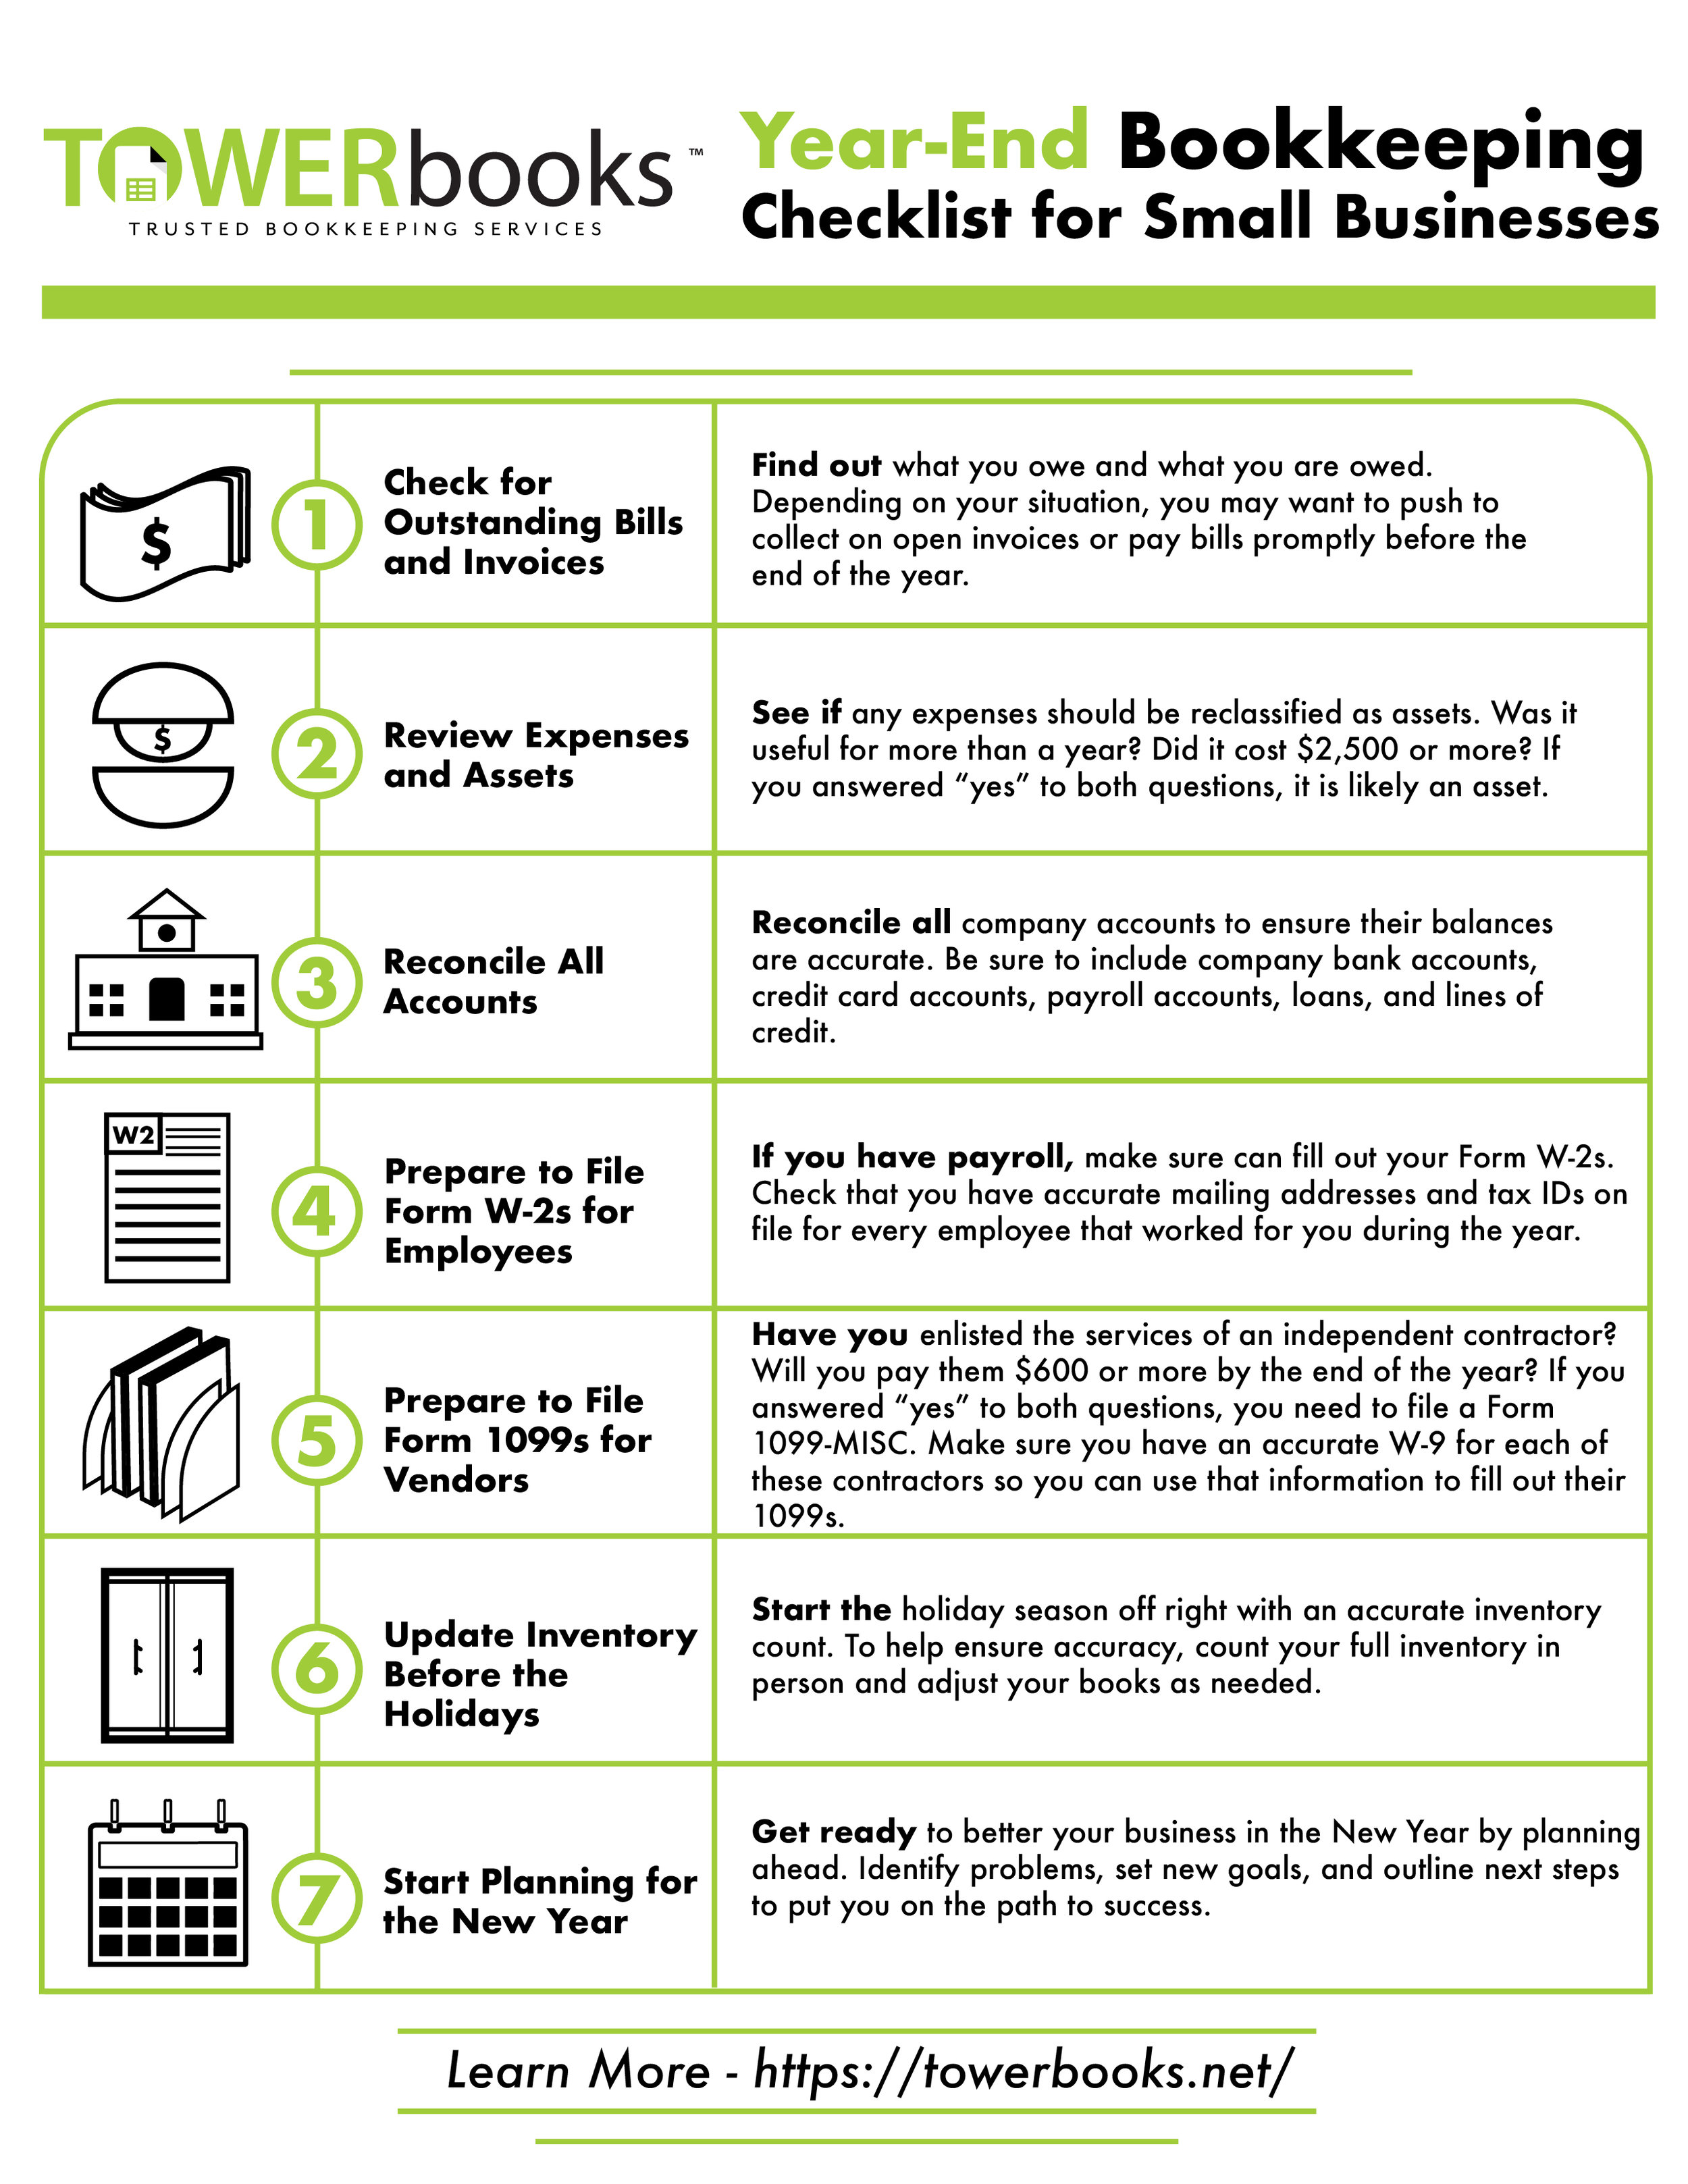 Tower Books Year-End Bookkeeping Checklist for Small Businesses.jpg